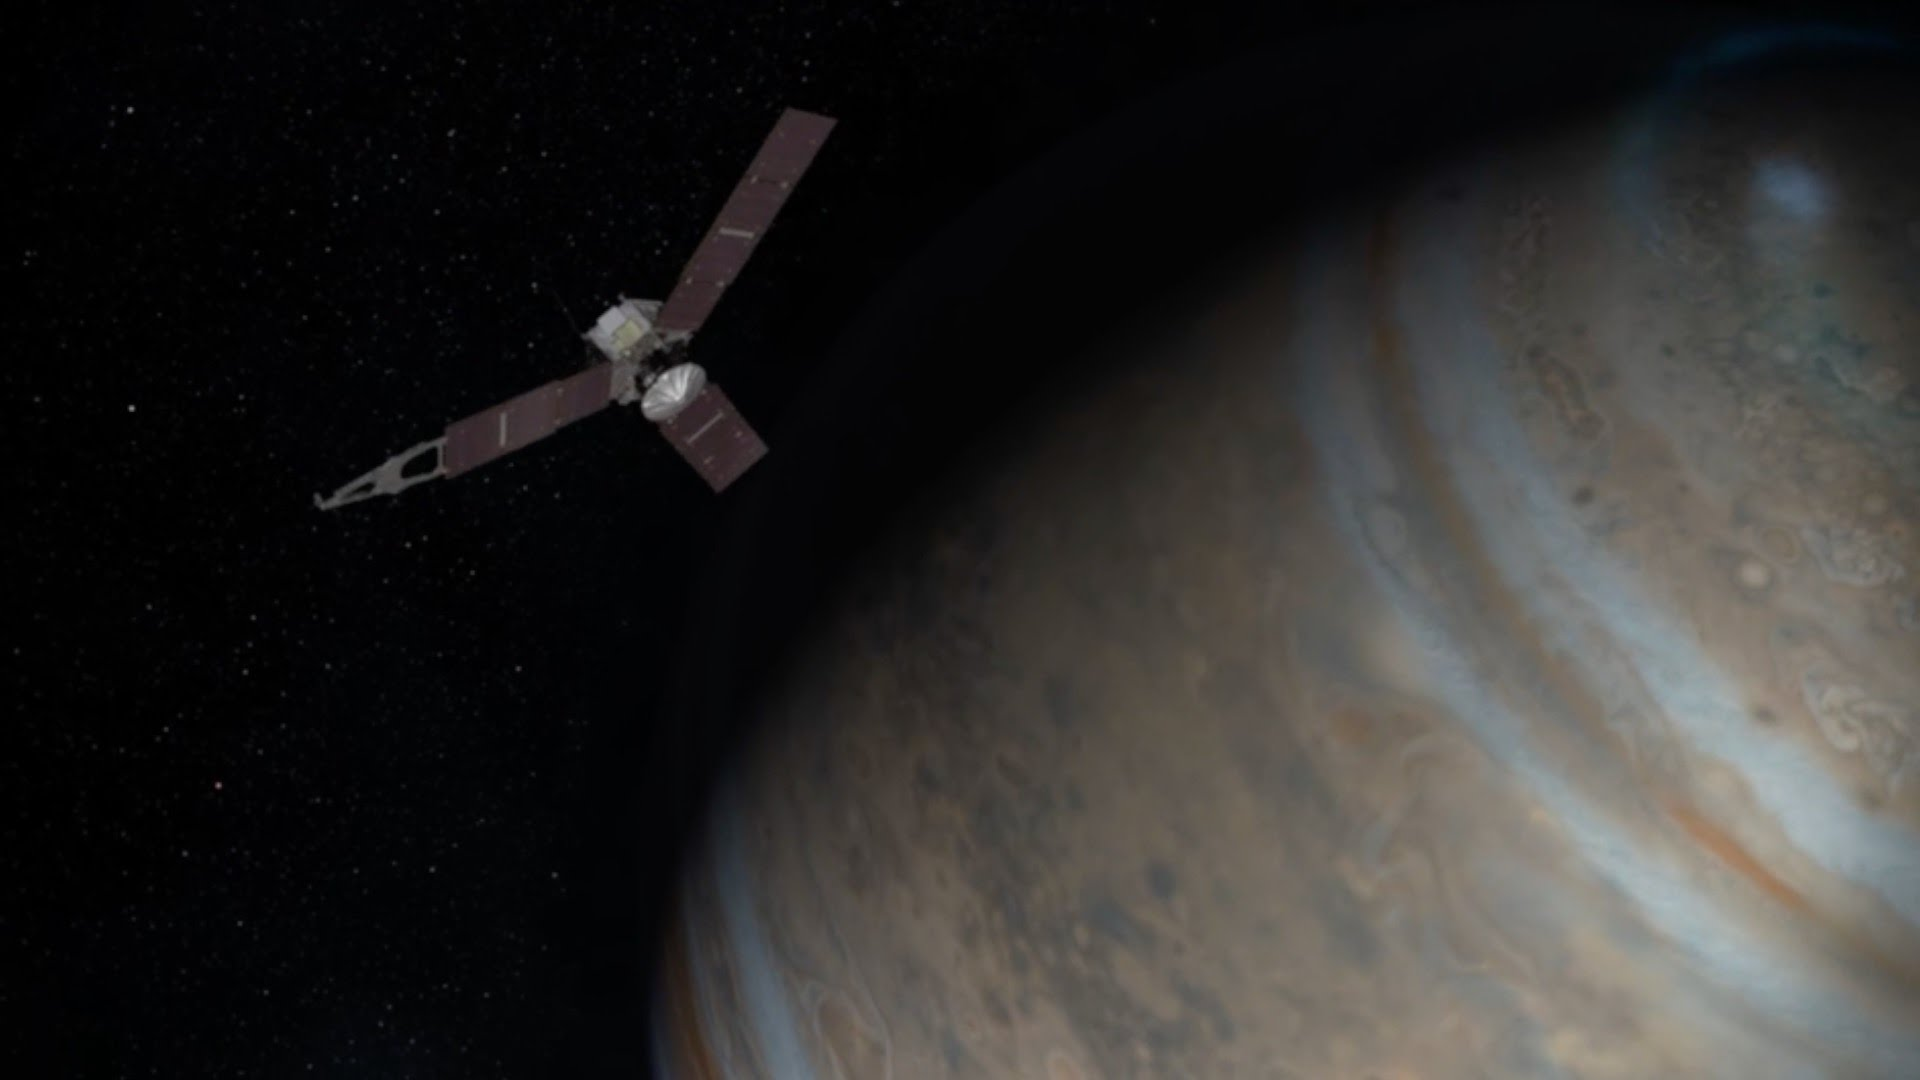 「太空探索新里程:NASA 朱諾號抵達木星軌道」- After Five-Year Journey, NASA's Juno Spacecraft Enters Jupiter's Orbit